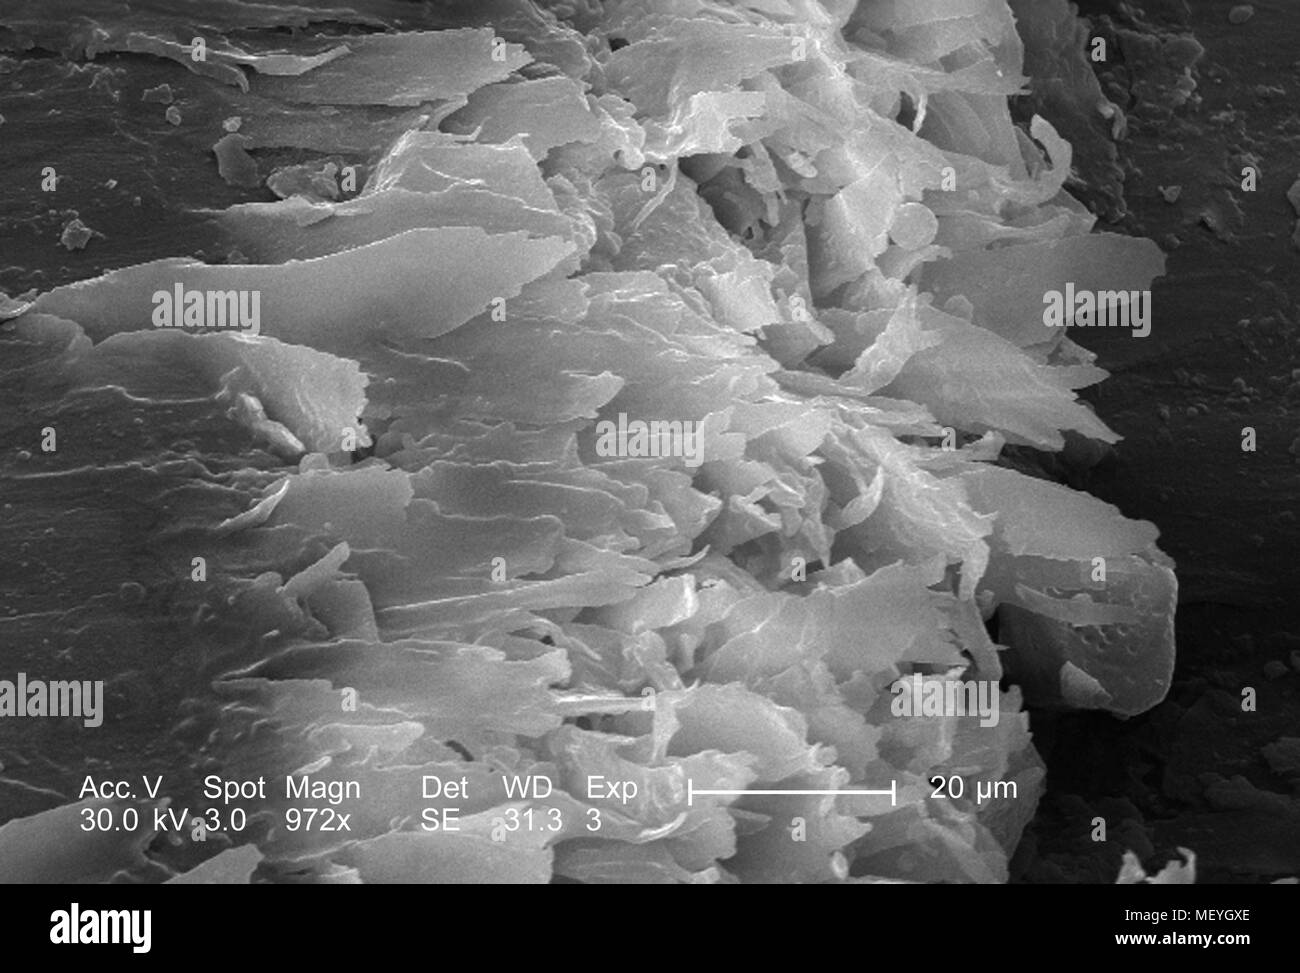 Morphological characteristics of the domesticated cat's (Felis domesticus) claw, revealed in the 972x magnified scanning electron microscopic (SEM) image, 2005. Image courtesy Centers for Disease Control (CDC) / Janice Haney Carr. () - Stock Image